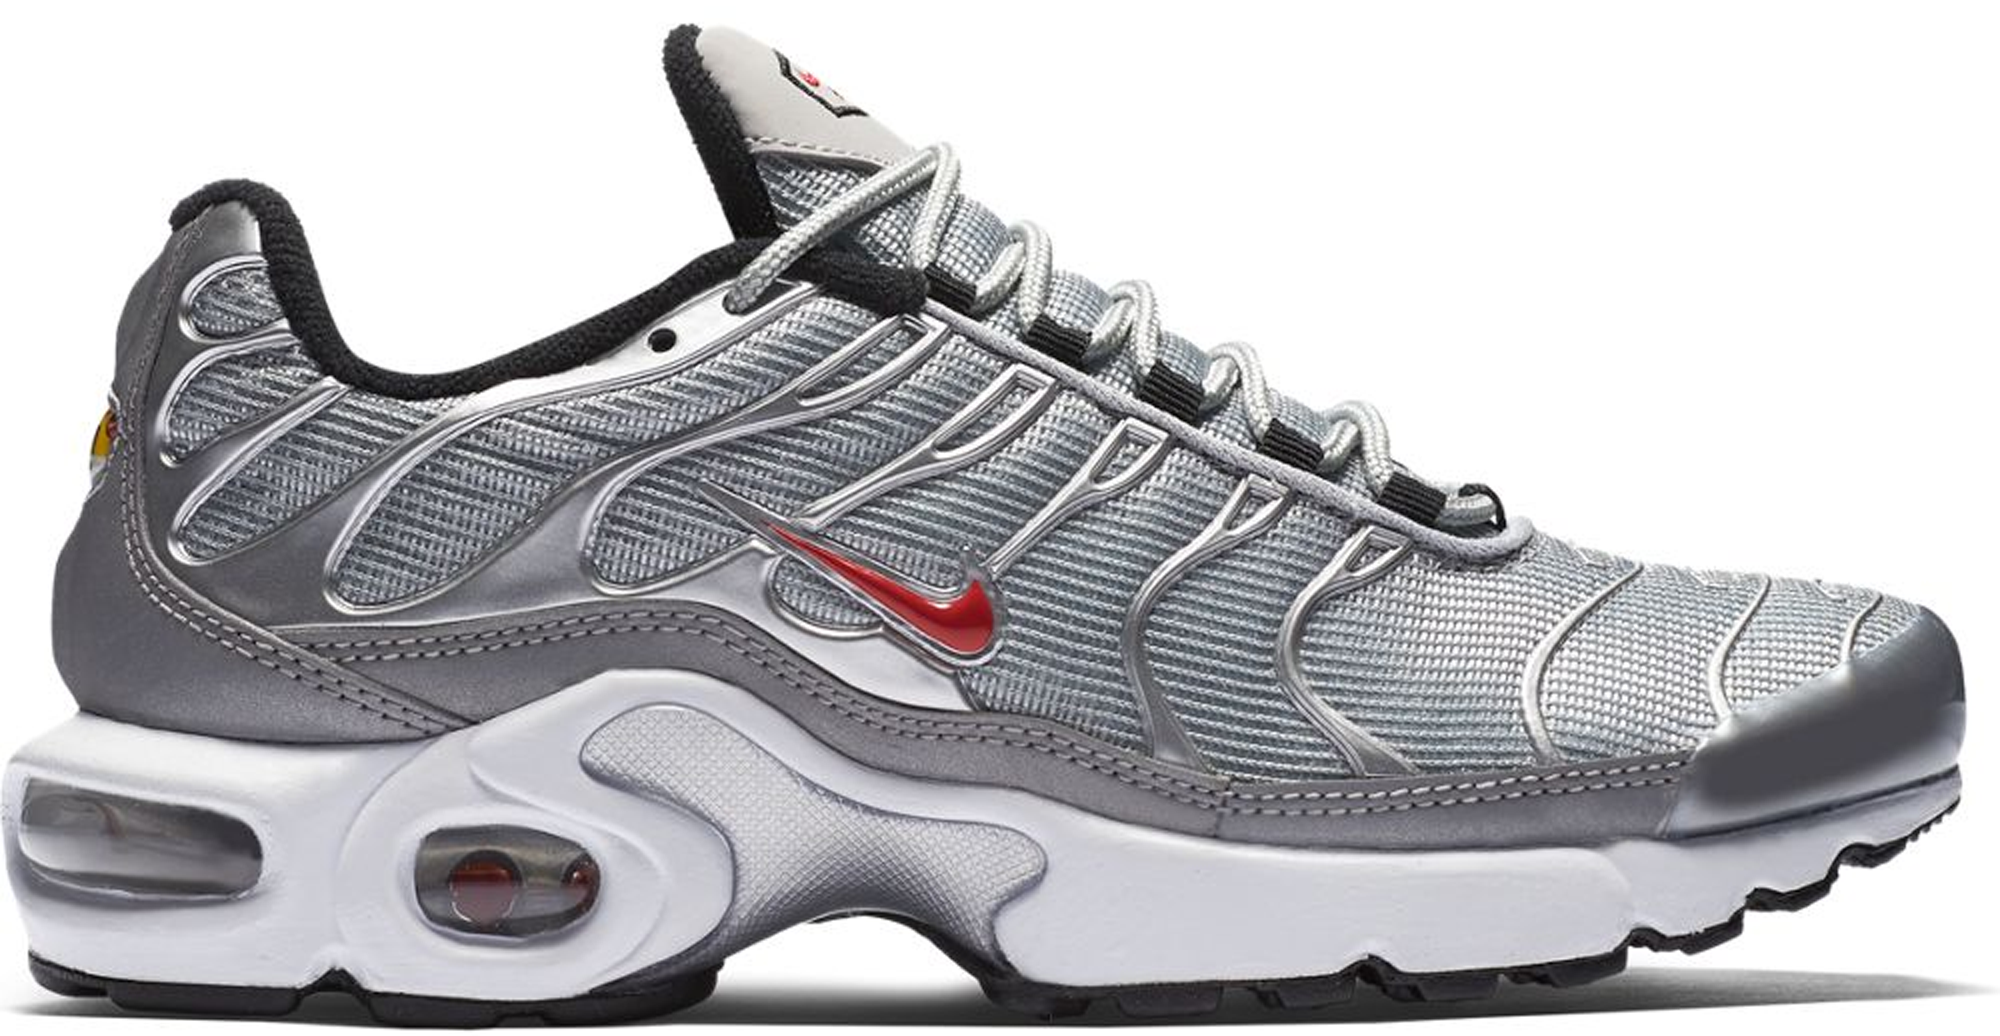 clearance nike air max tn silver bullet for sale c04d7 c0120 f6c732381610